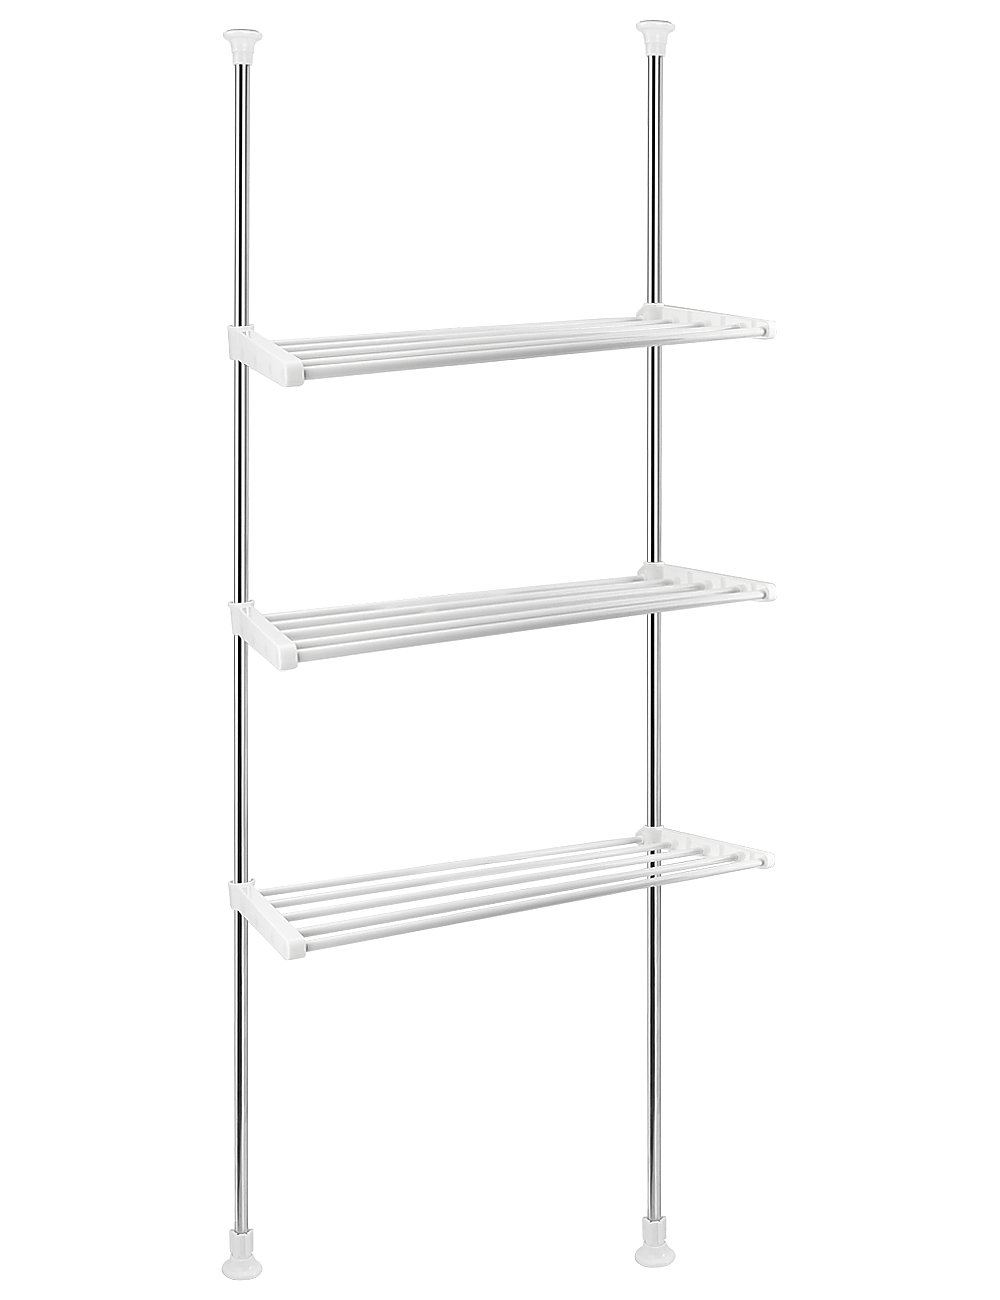 Caeser Archy Telescopic Bathroom Shelves Stainless Steel Caddy Shelf Unit Shower Rack Towel Rail Corner Storage Shelving 3 Tier Retractable Poles Height 110 to 310 cm No Screw Drilling Required White